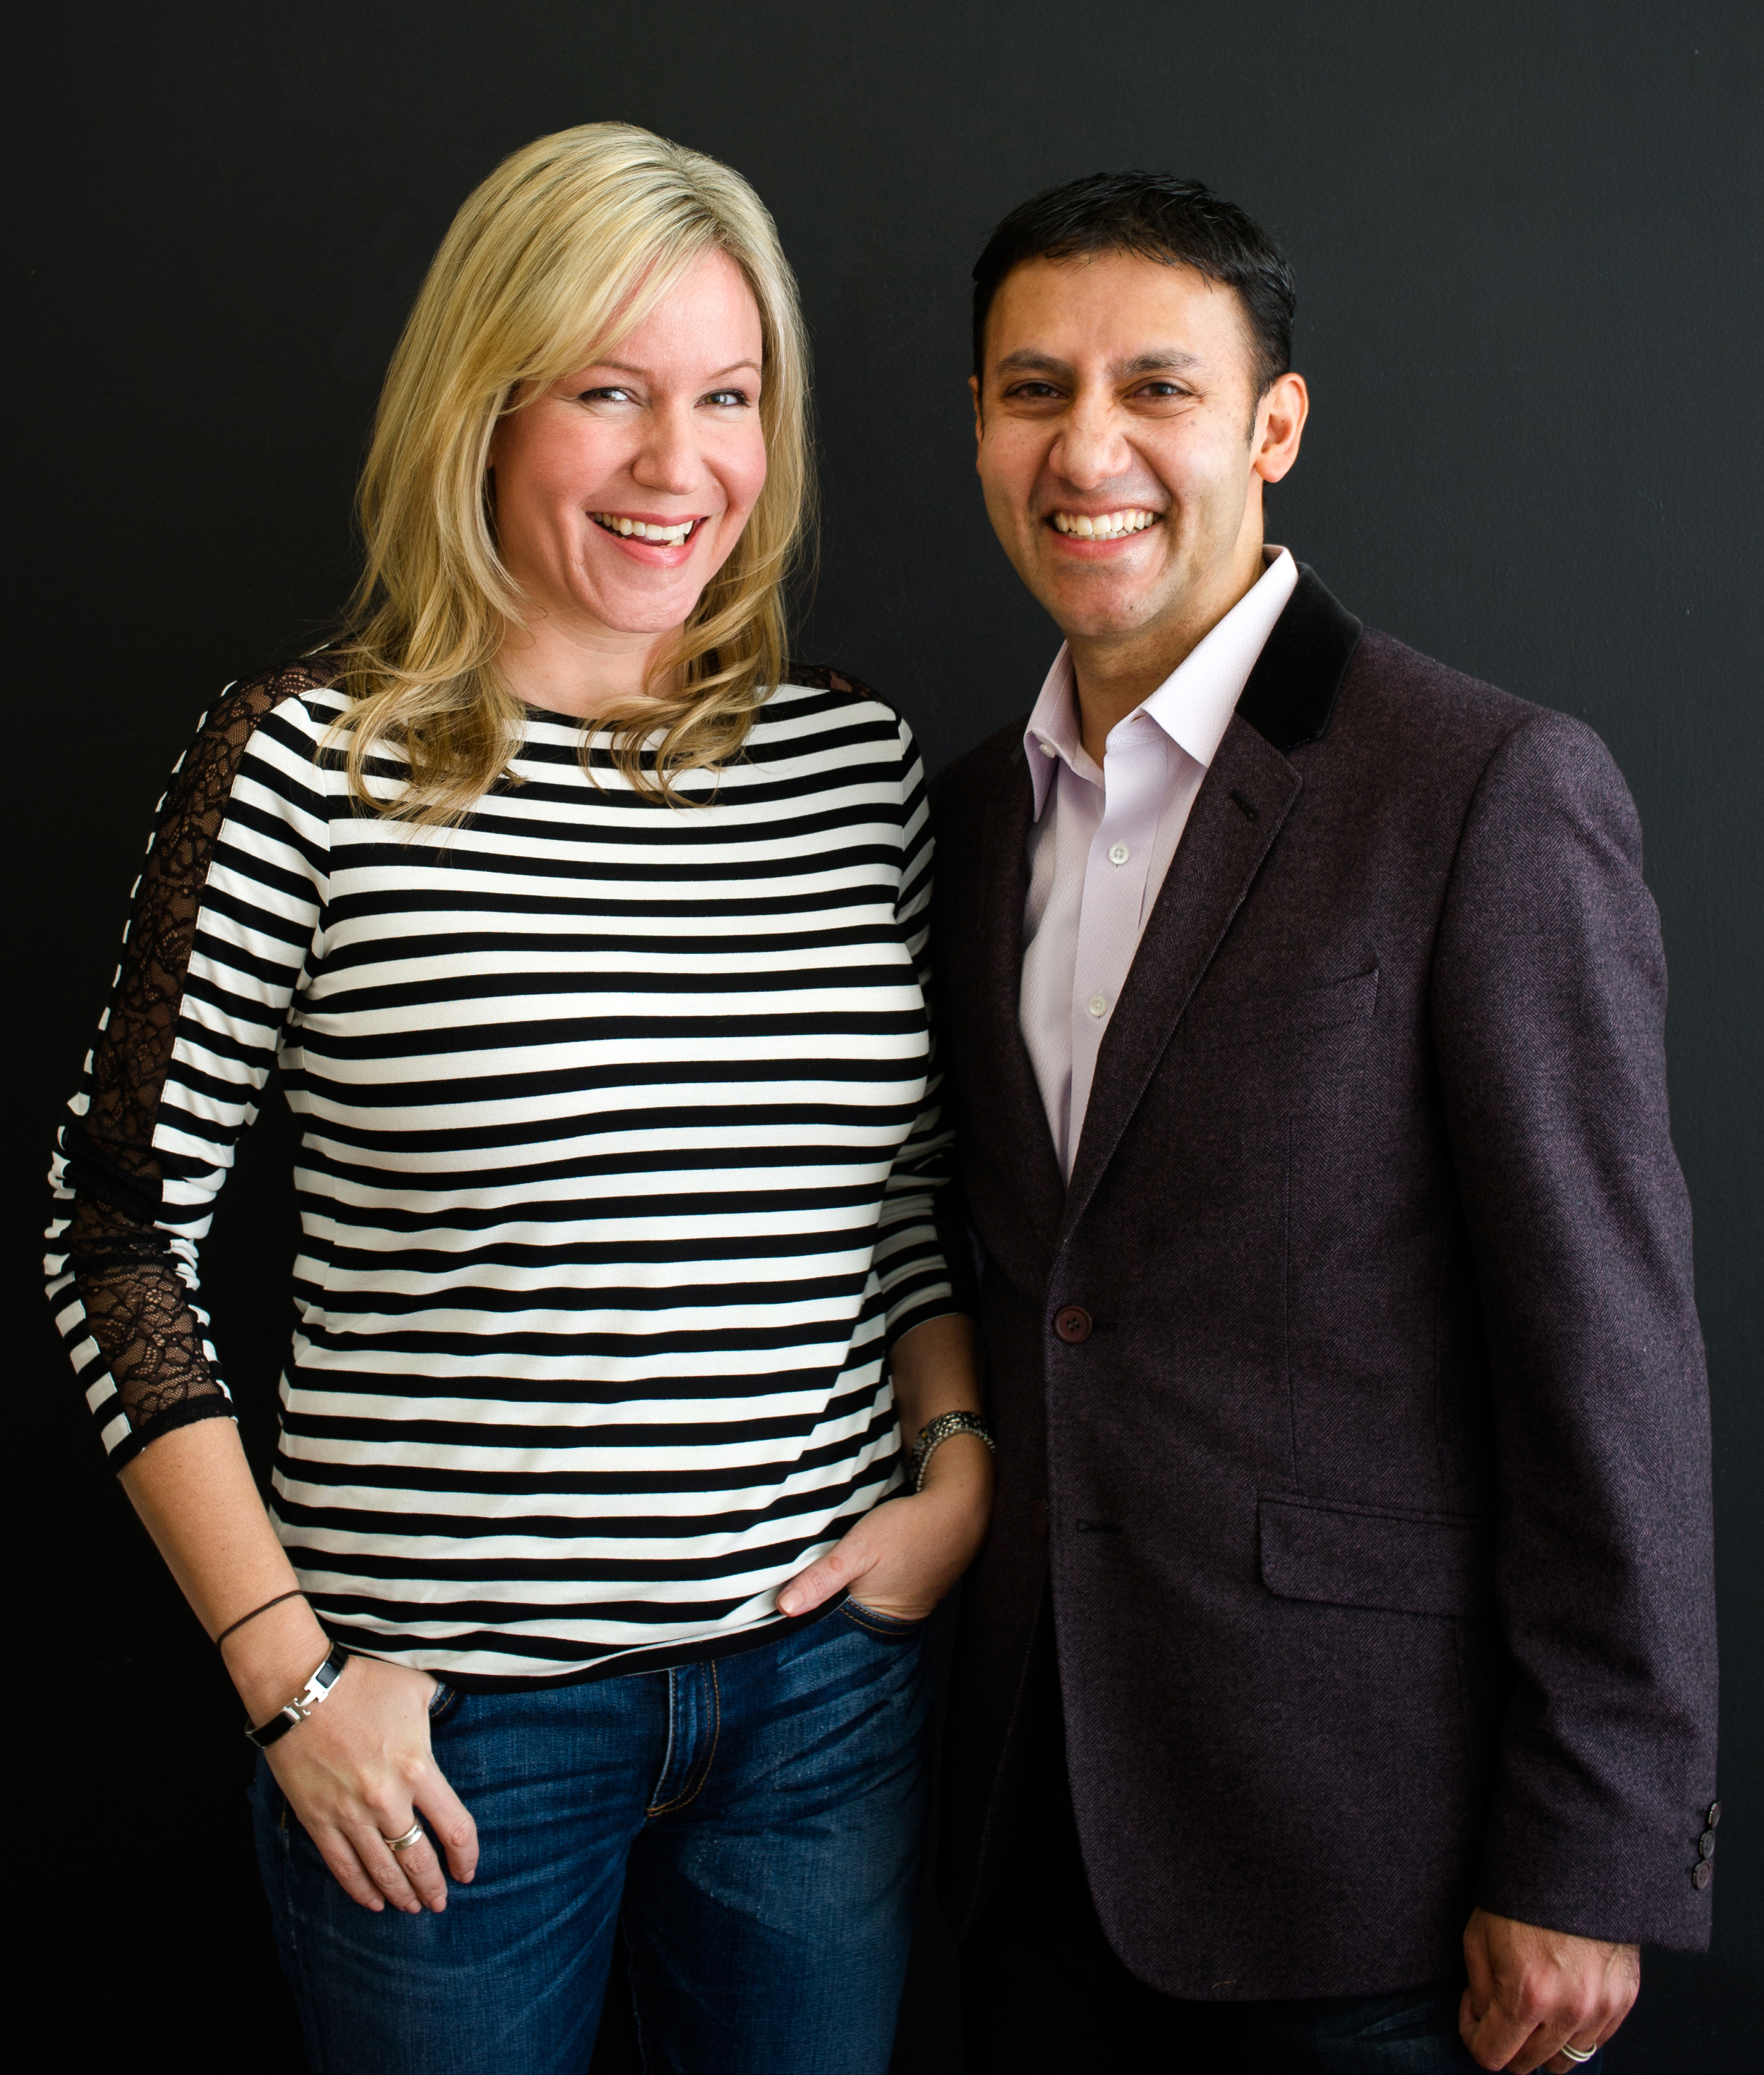 Arif + Lindsay Head Shots + Profile Shoot 2013-60.jpg